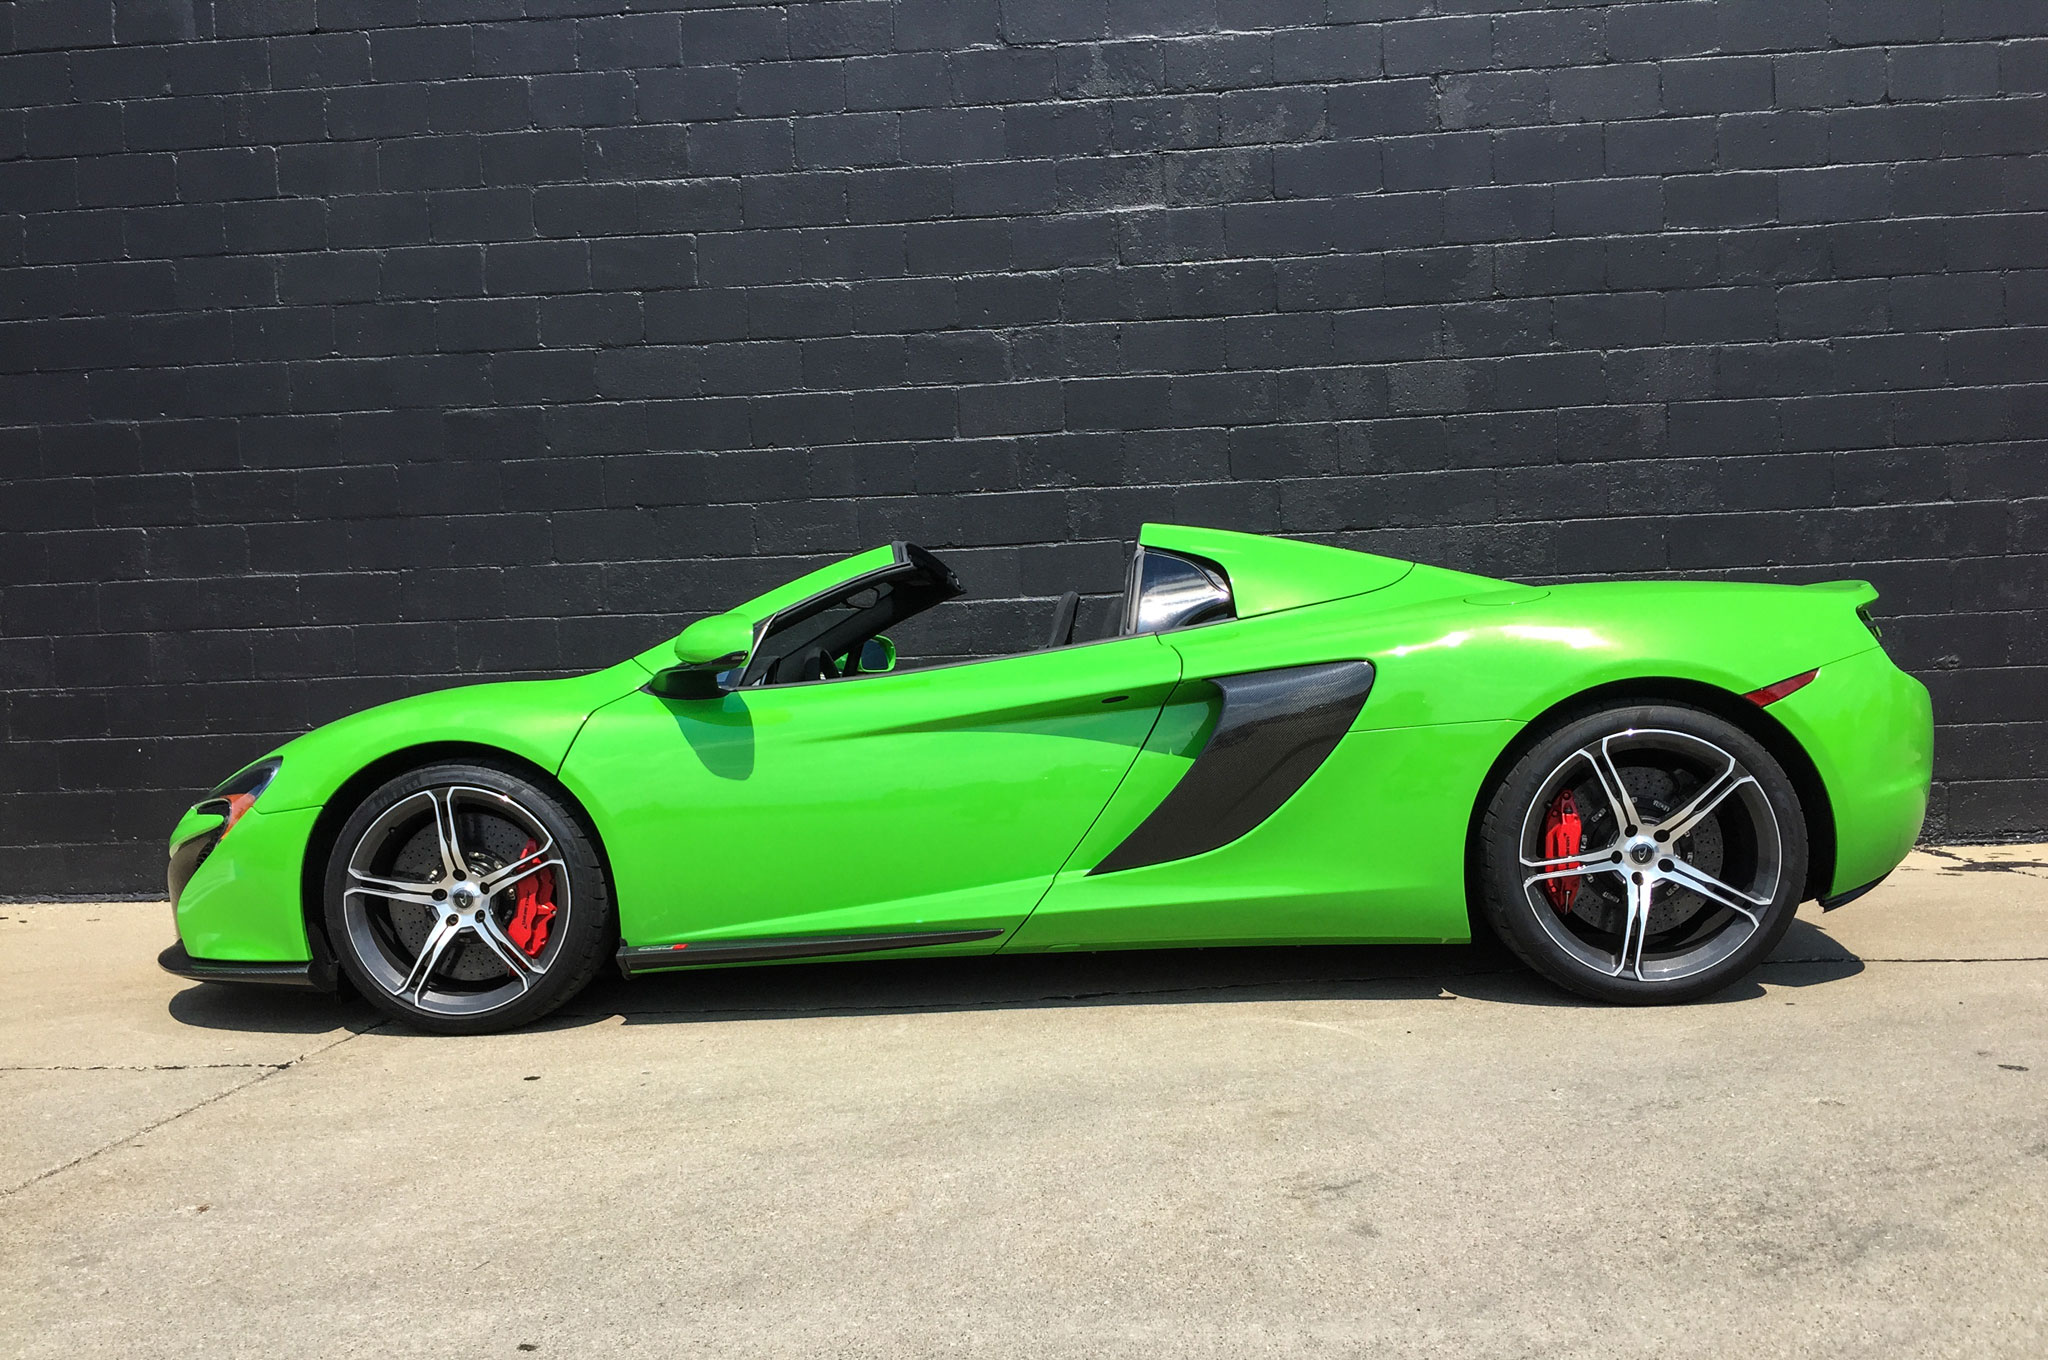 10 Things To Know About Driving A 2015 McLaren 650S Spider